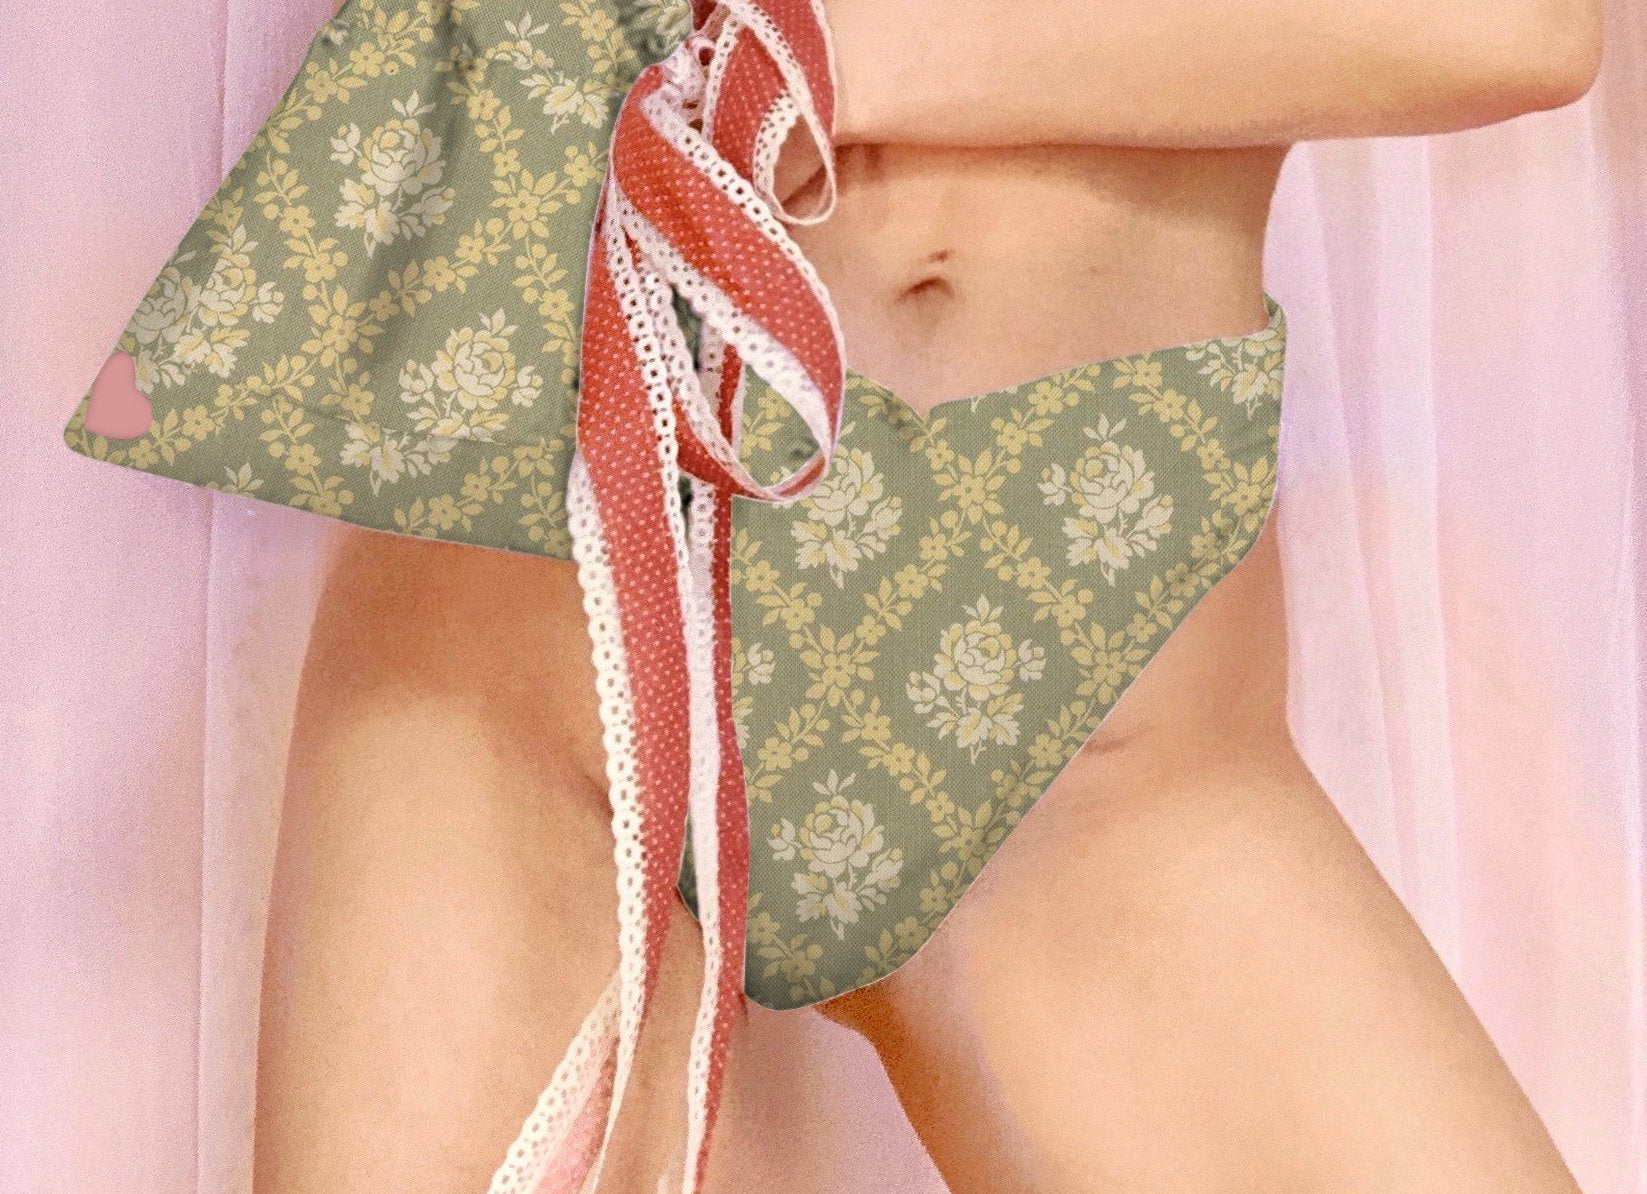 Uptown Abbey Bikini Top/Bottom Sage Green, Limited Edition for Pre-order